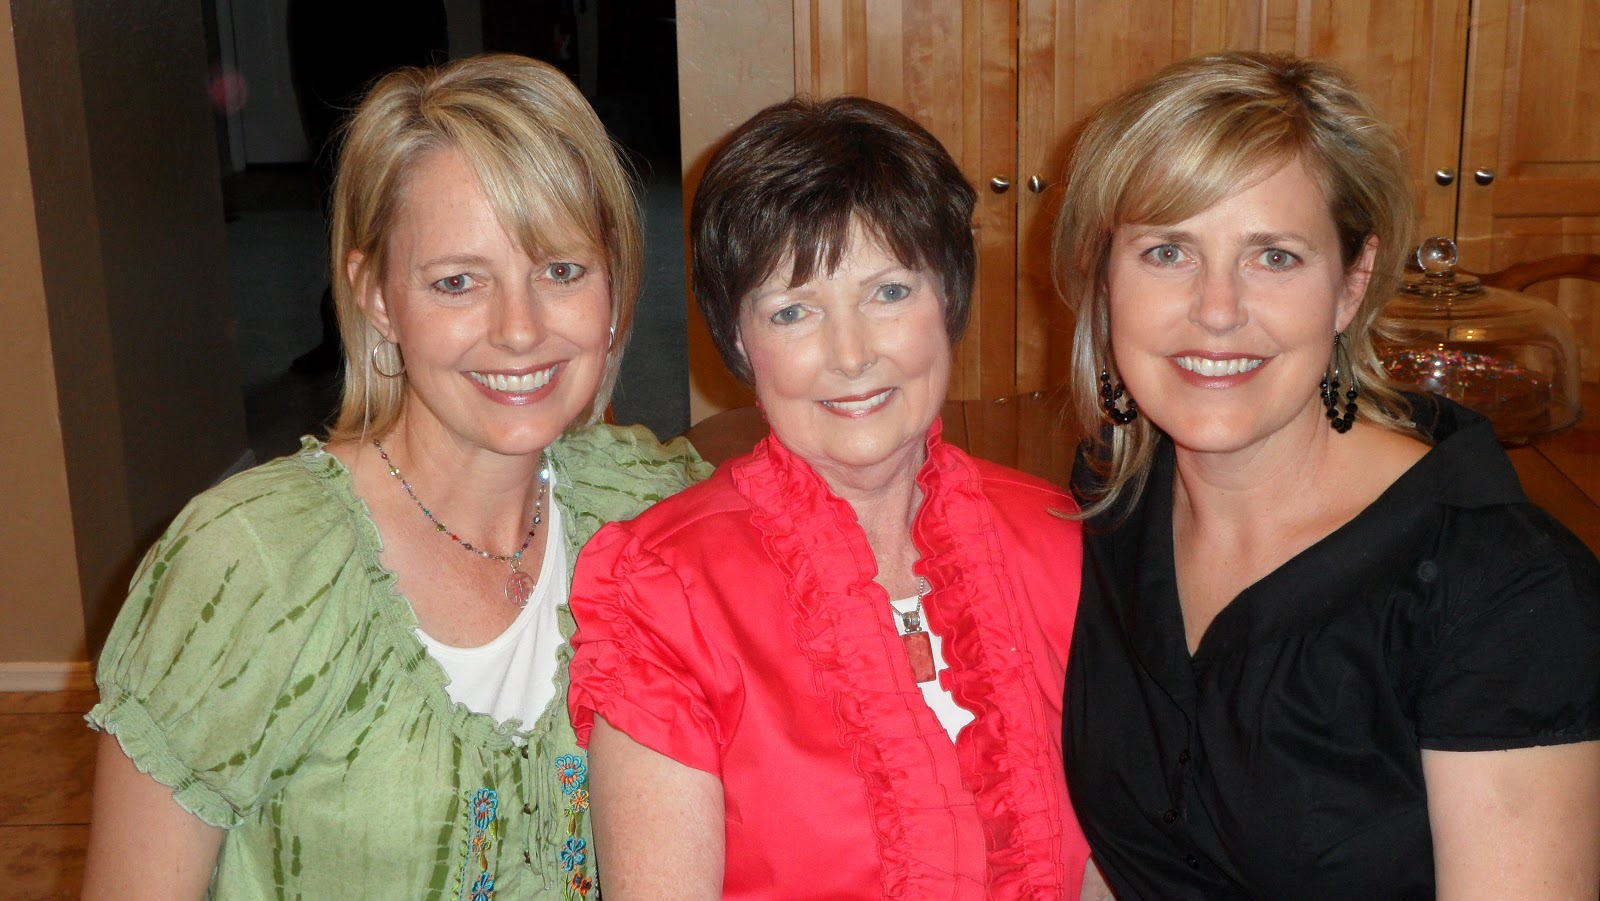 Gayla Garn Peterson, Irene, Dana Garn Garry (our daughters)